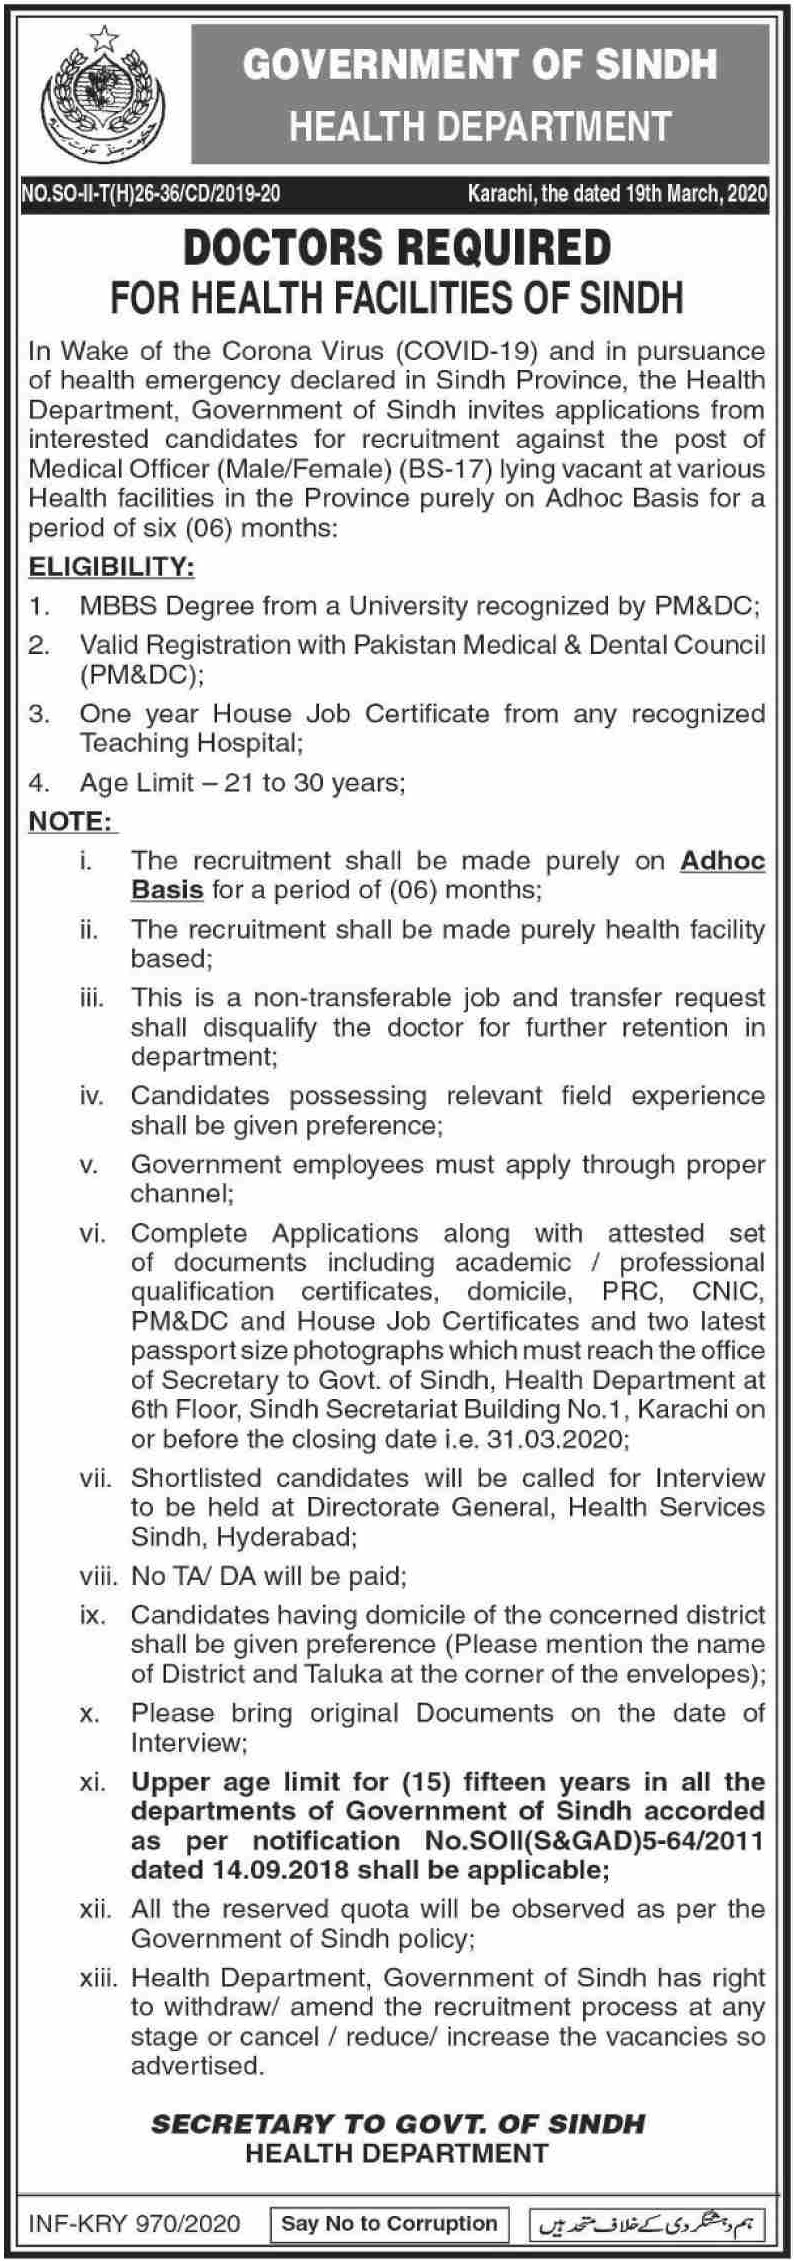 Health Department Sindh Jobs 2020 Doctors